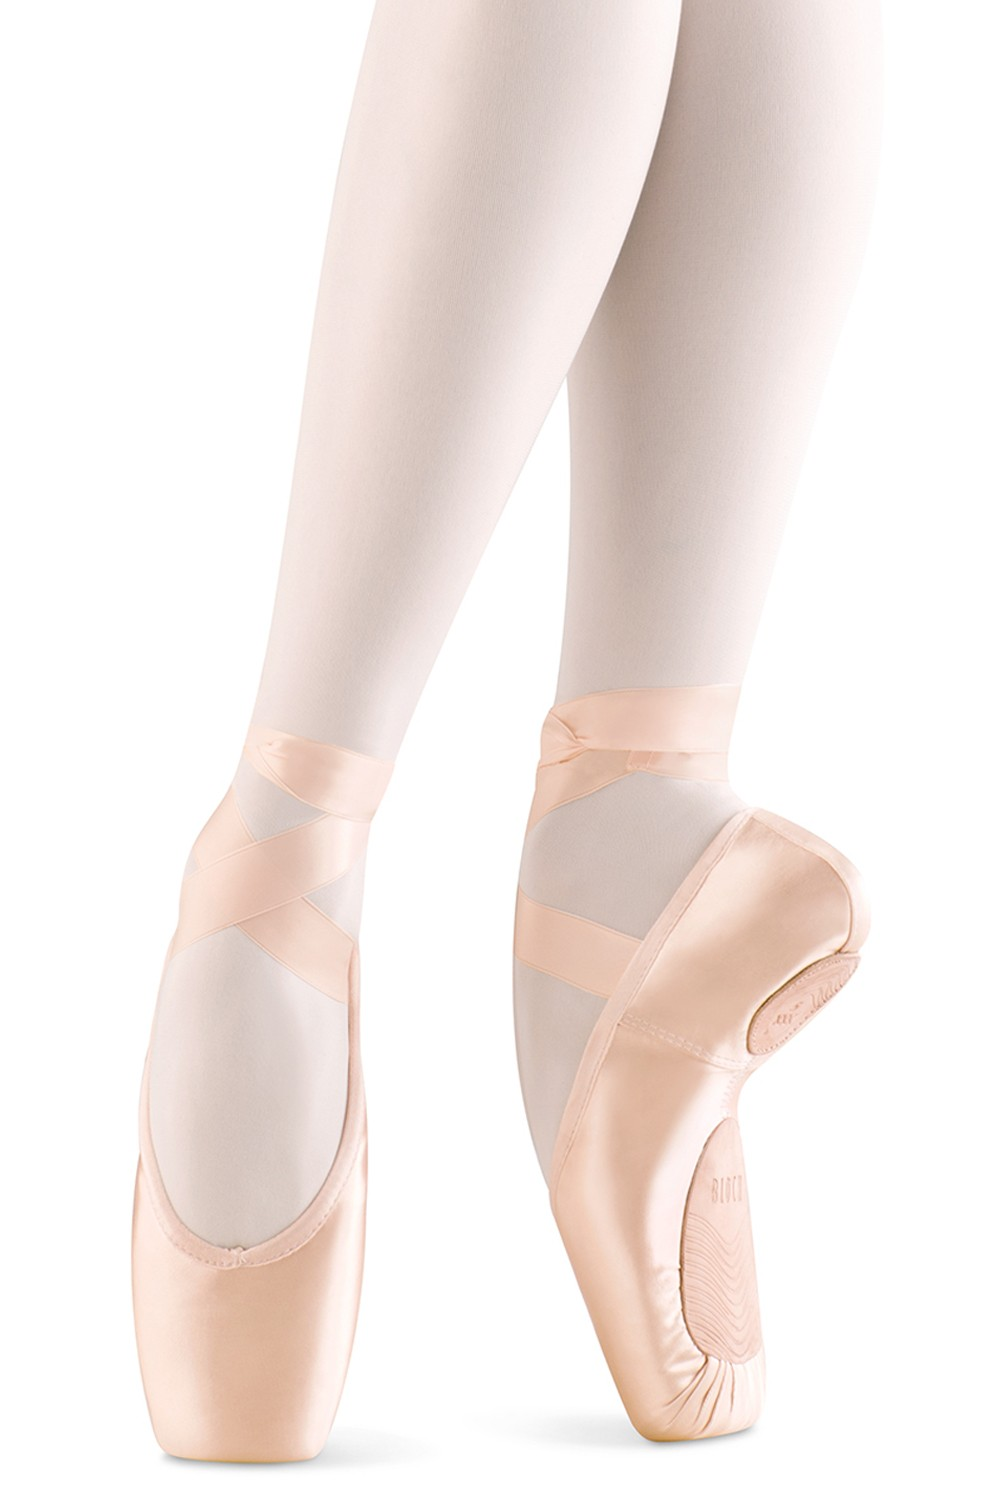 Eurostretch - Scarpette Da Punta Elasticizzate Pointe Shoes